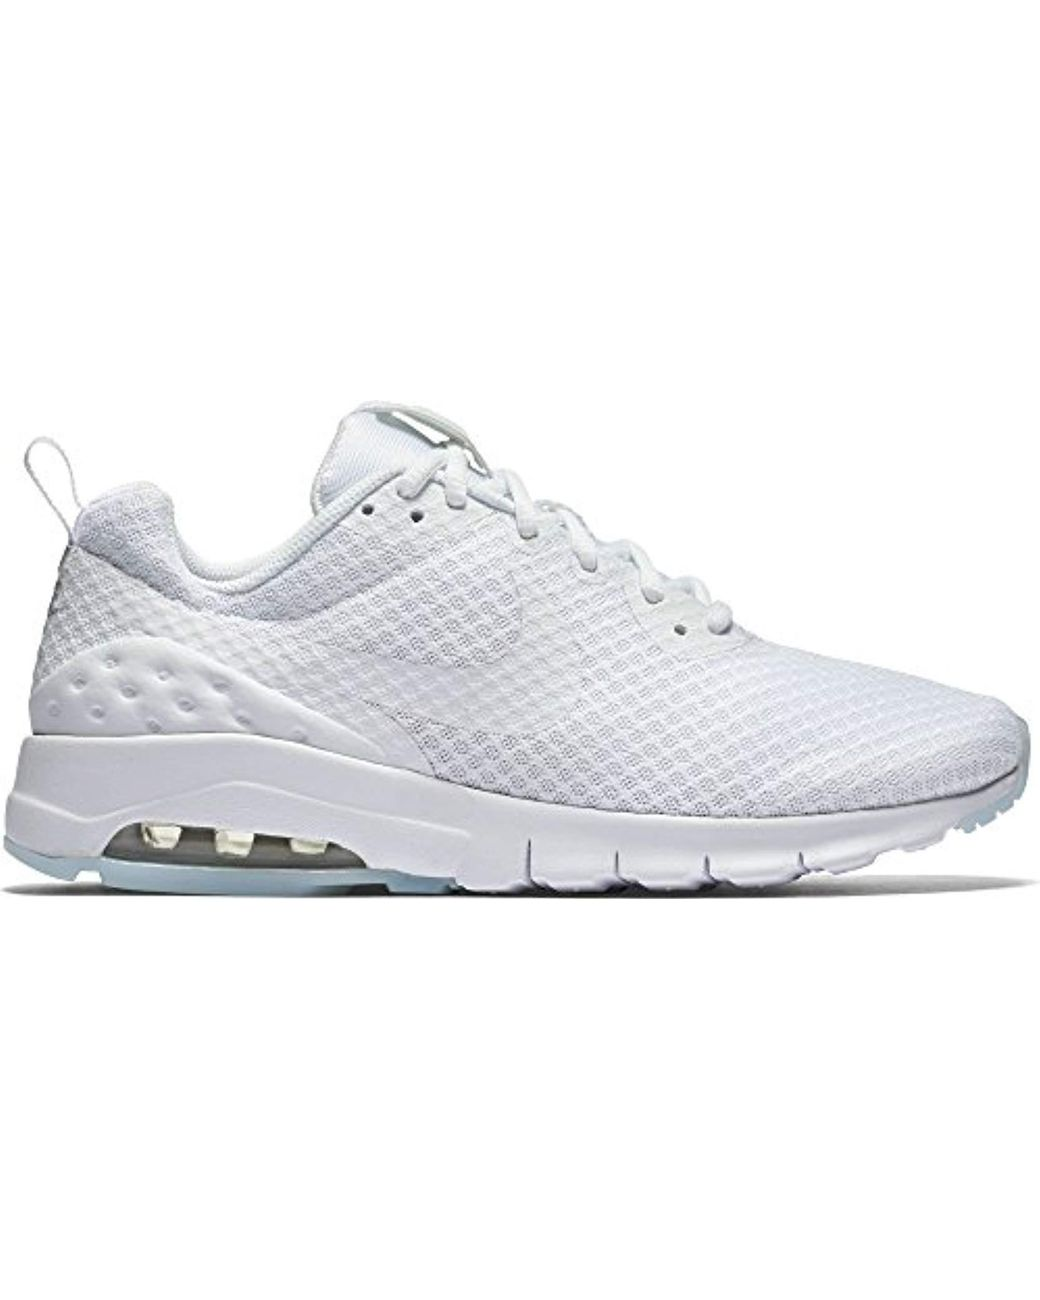 Nike Wmns Air Max Motion Lw Gymnastics Shoes in WhiteWhite